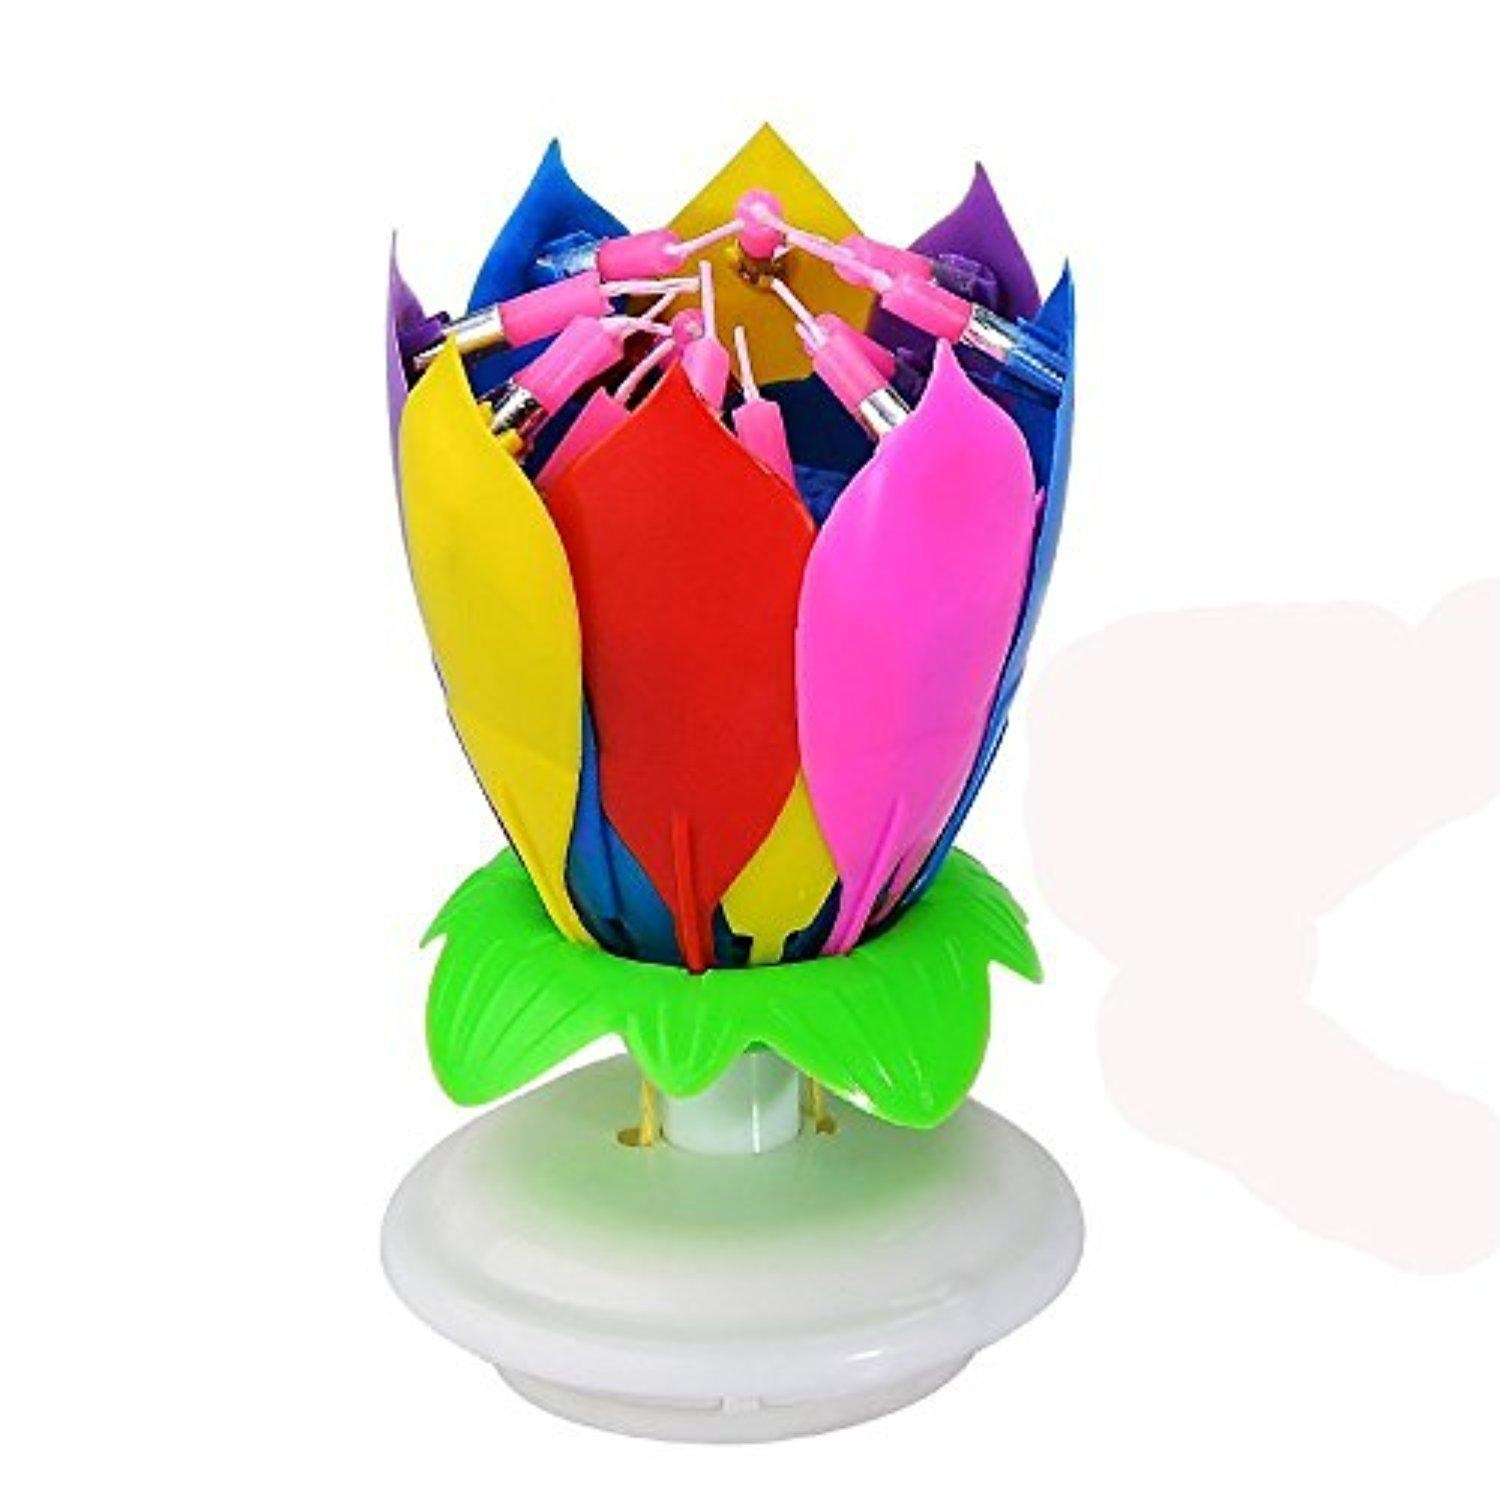 Online Store Music Birthday Candle With 14 Little Candles And Spins Rainbow